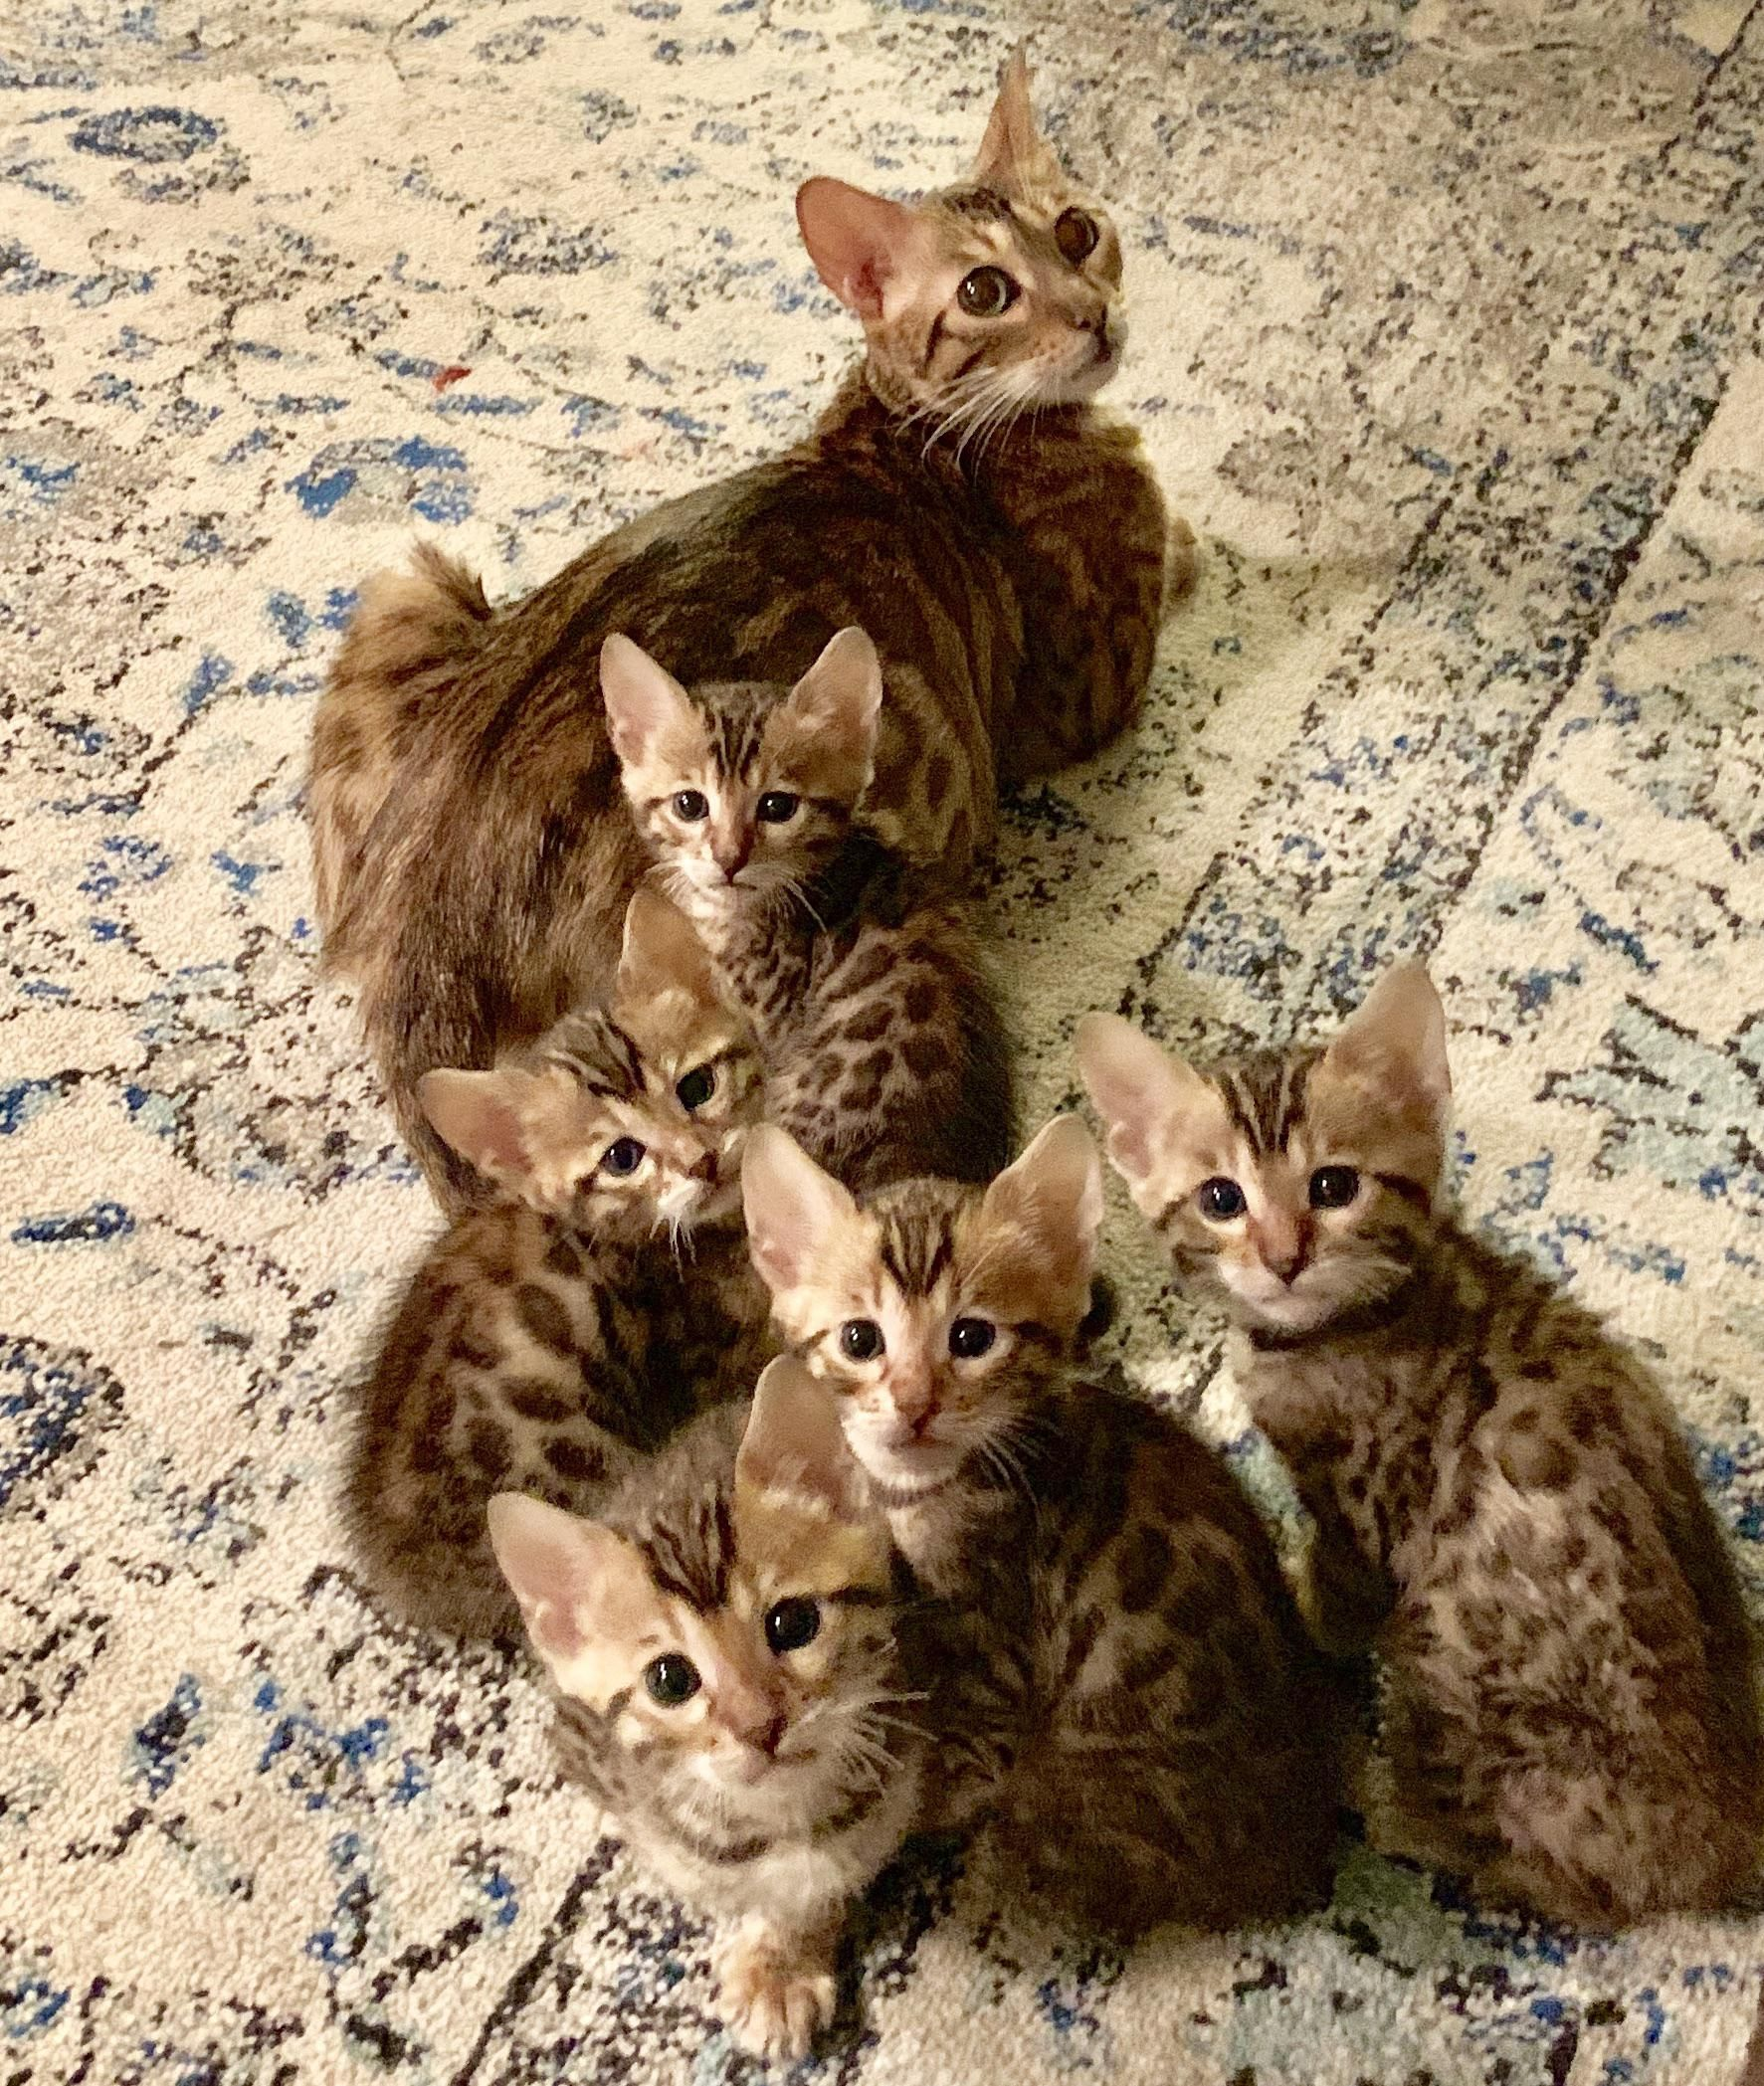 Mamma Brought Her Babies Downstairs For The First Time Tonight Those Faces Cute Cats Cute Baby Animals Kittens Puppies